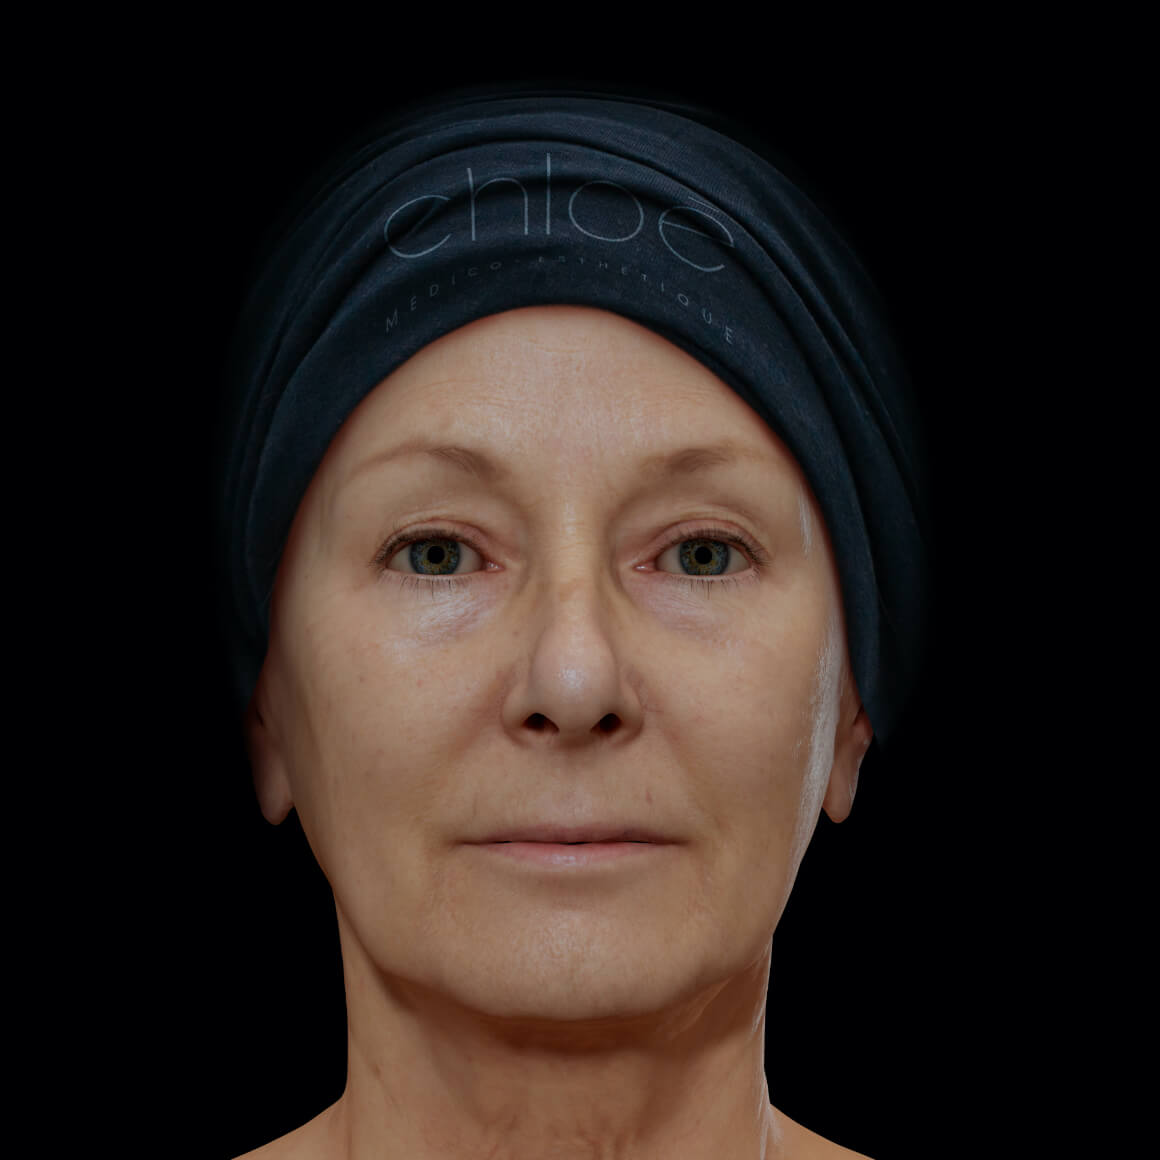 A female patient at Clinique Chloé, facing front, after neuromodulator injections to reduce or even erase wrinkles